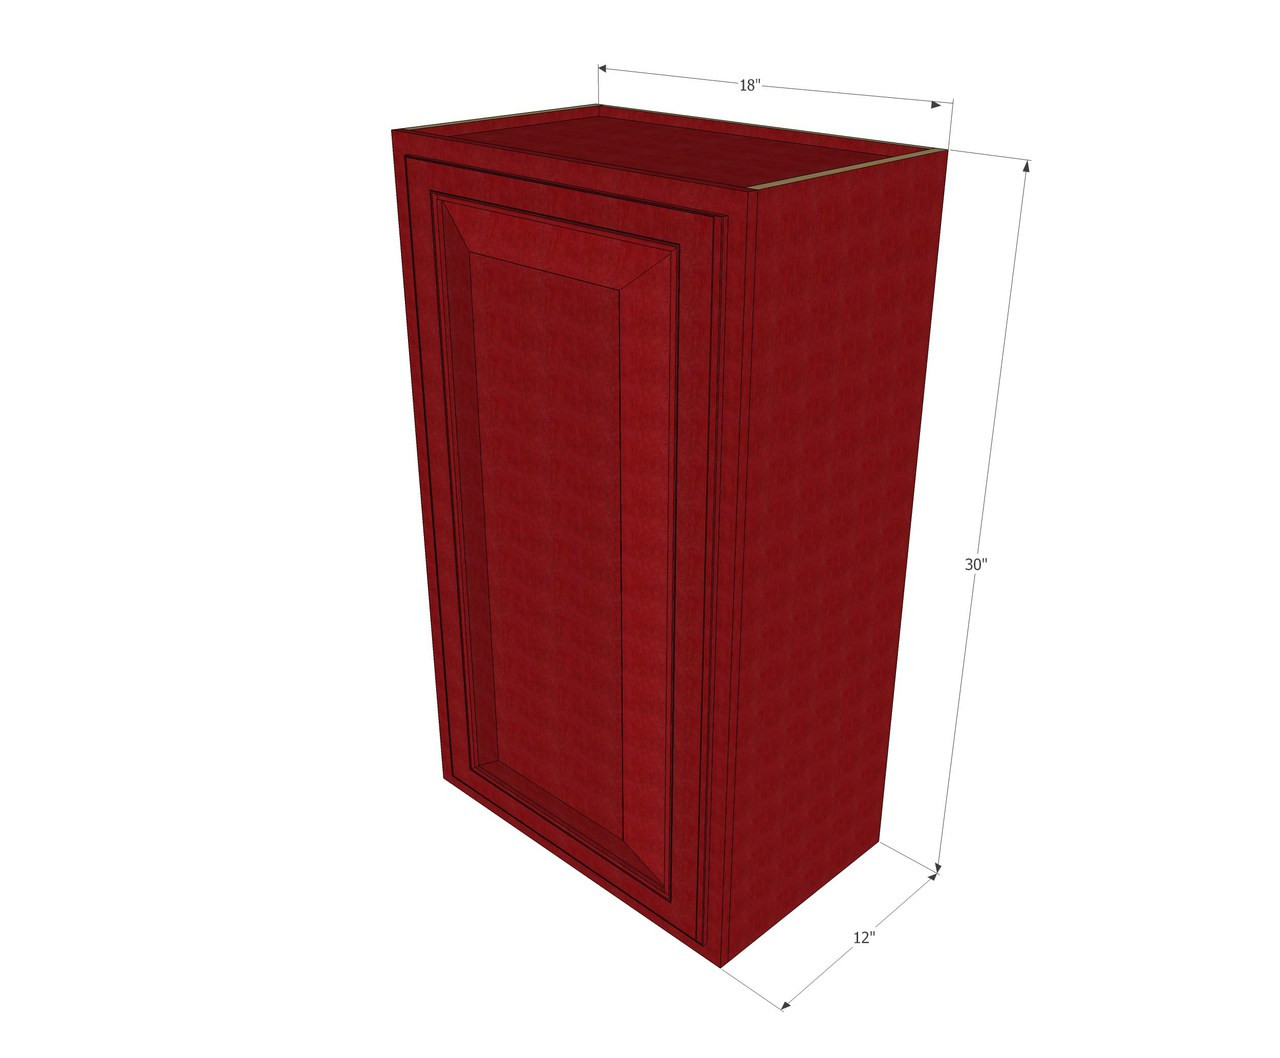 Small single door grand reserve cherry wall cabinet 18 for Kitchen cabinets 30 x 18